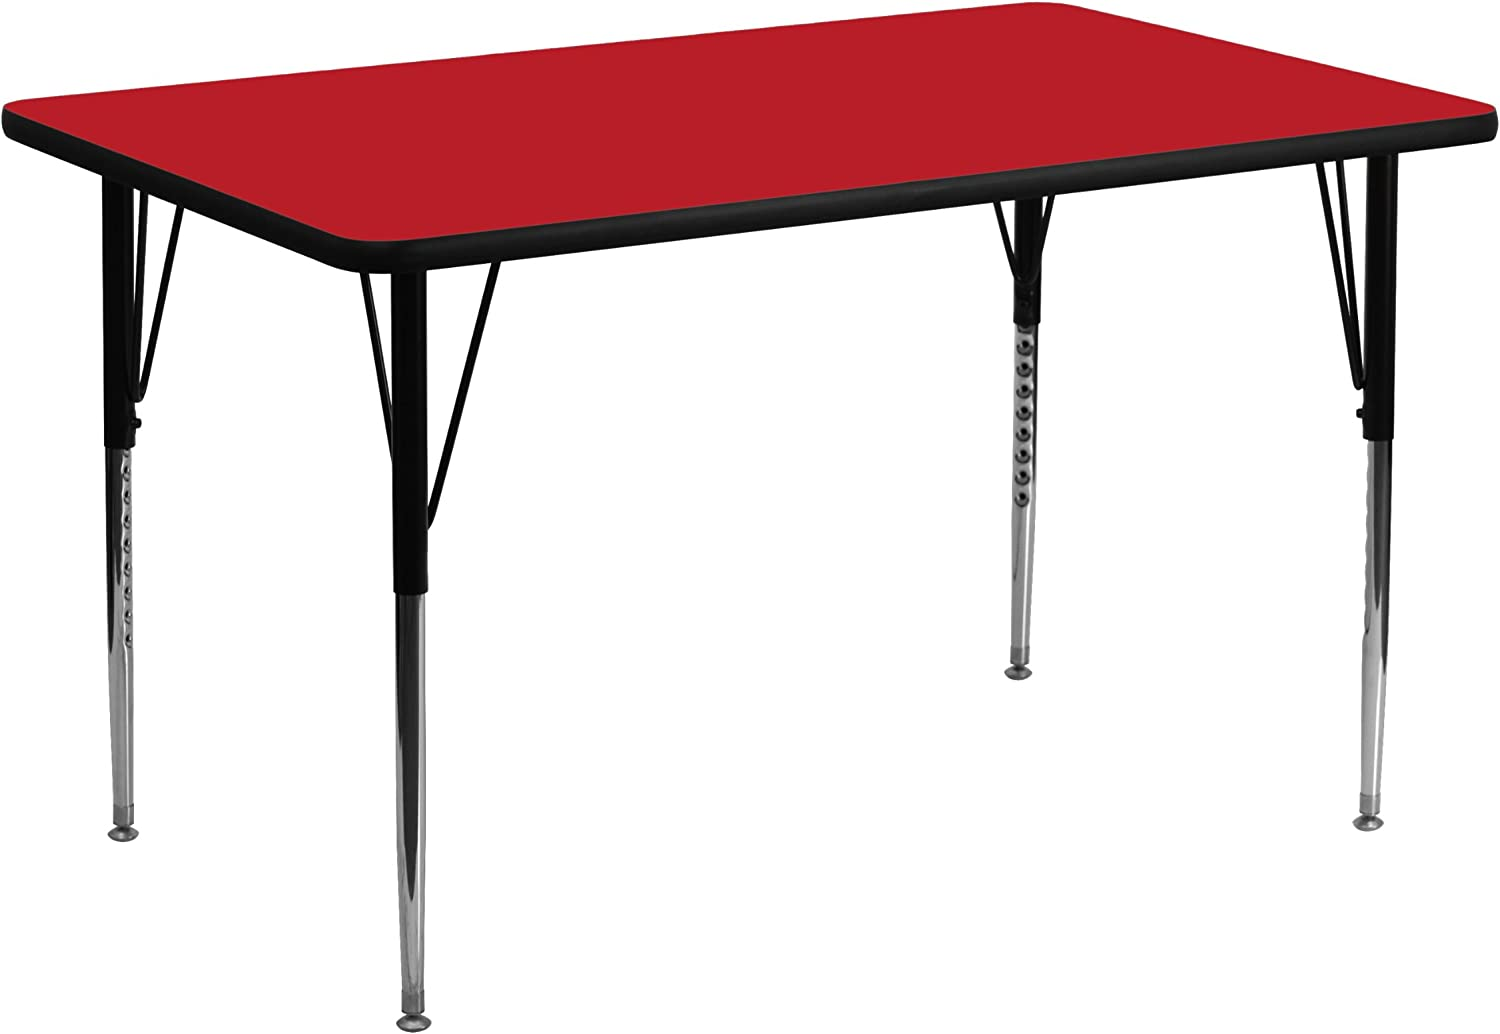 Flash Furniture 24''W x 48''L Rectangular Red HP Laminate Activity Table - Standard Height Adjustable Legs